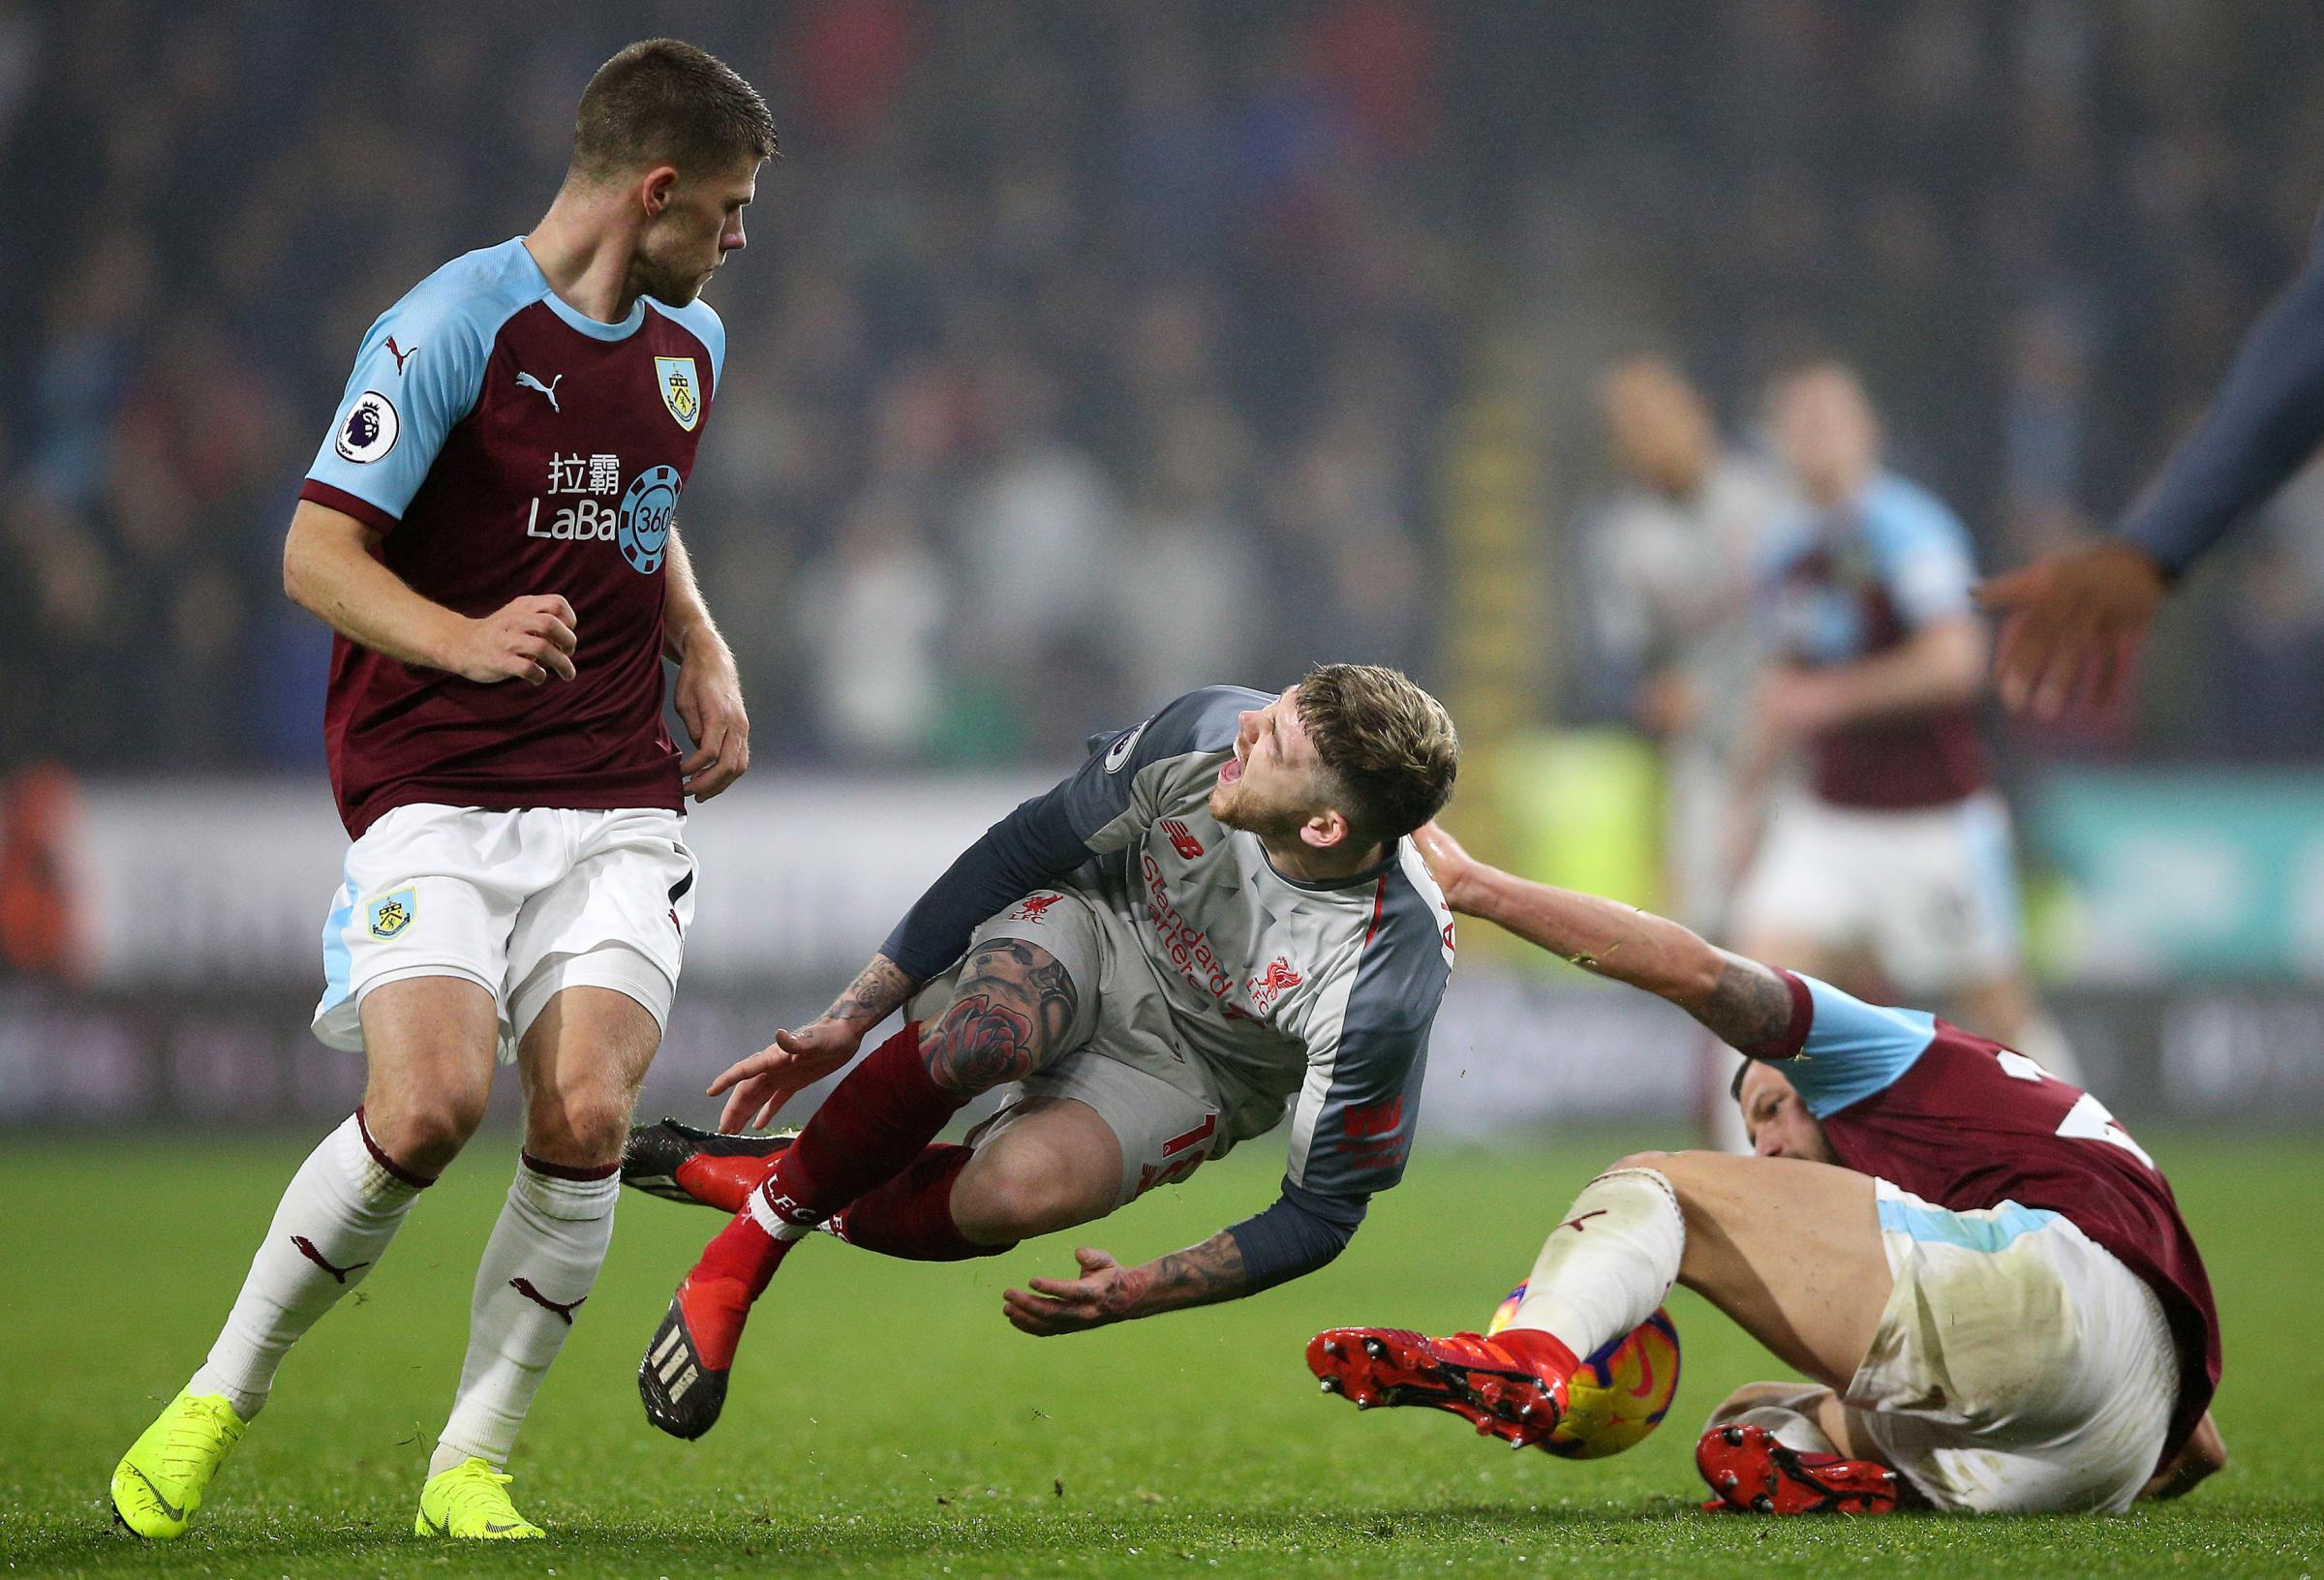 Liverpool's Alberto Moreno (centre) reacts to a challenge during the Premier League match at Turf Moor, Burnley. PRESS ASSOCIATION Photo. Picture date: Wednesday December 5, 2018. See PA story SOCCER Burnley. Photo credit should read: Nigel French/PA